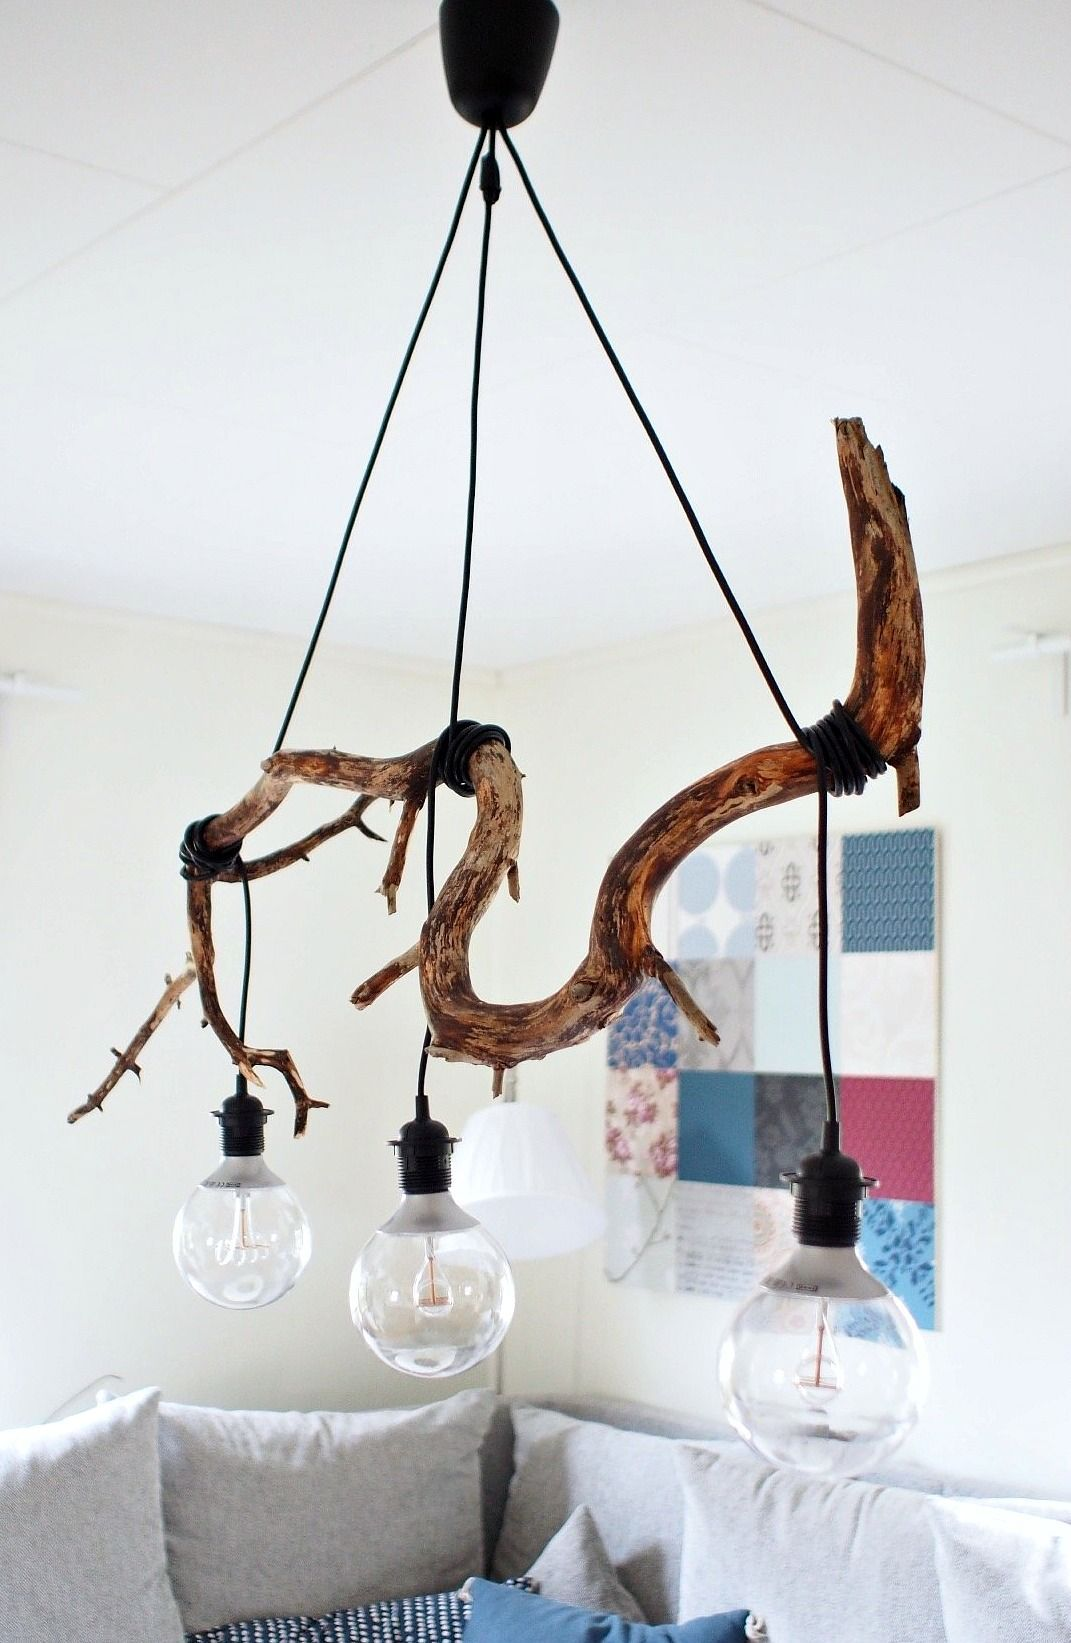 DIY #hanger #lampa #över #soffbordet #som My DIY lamp from